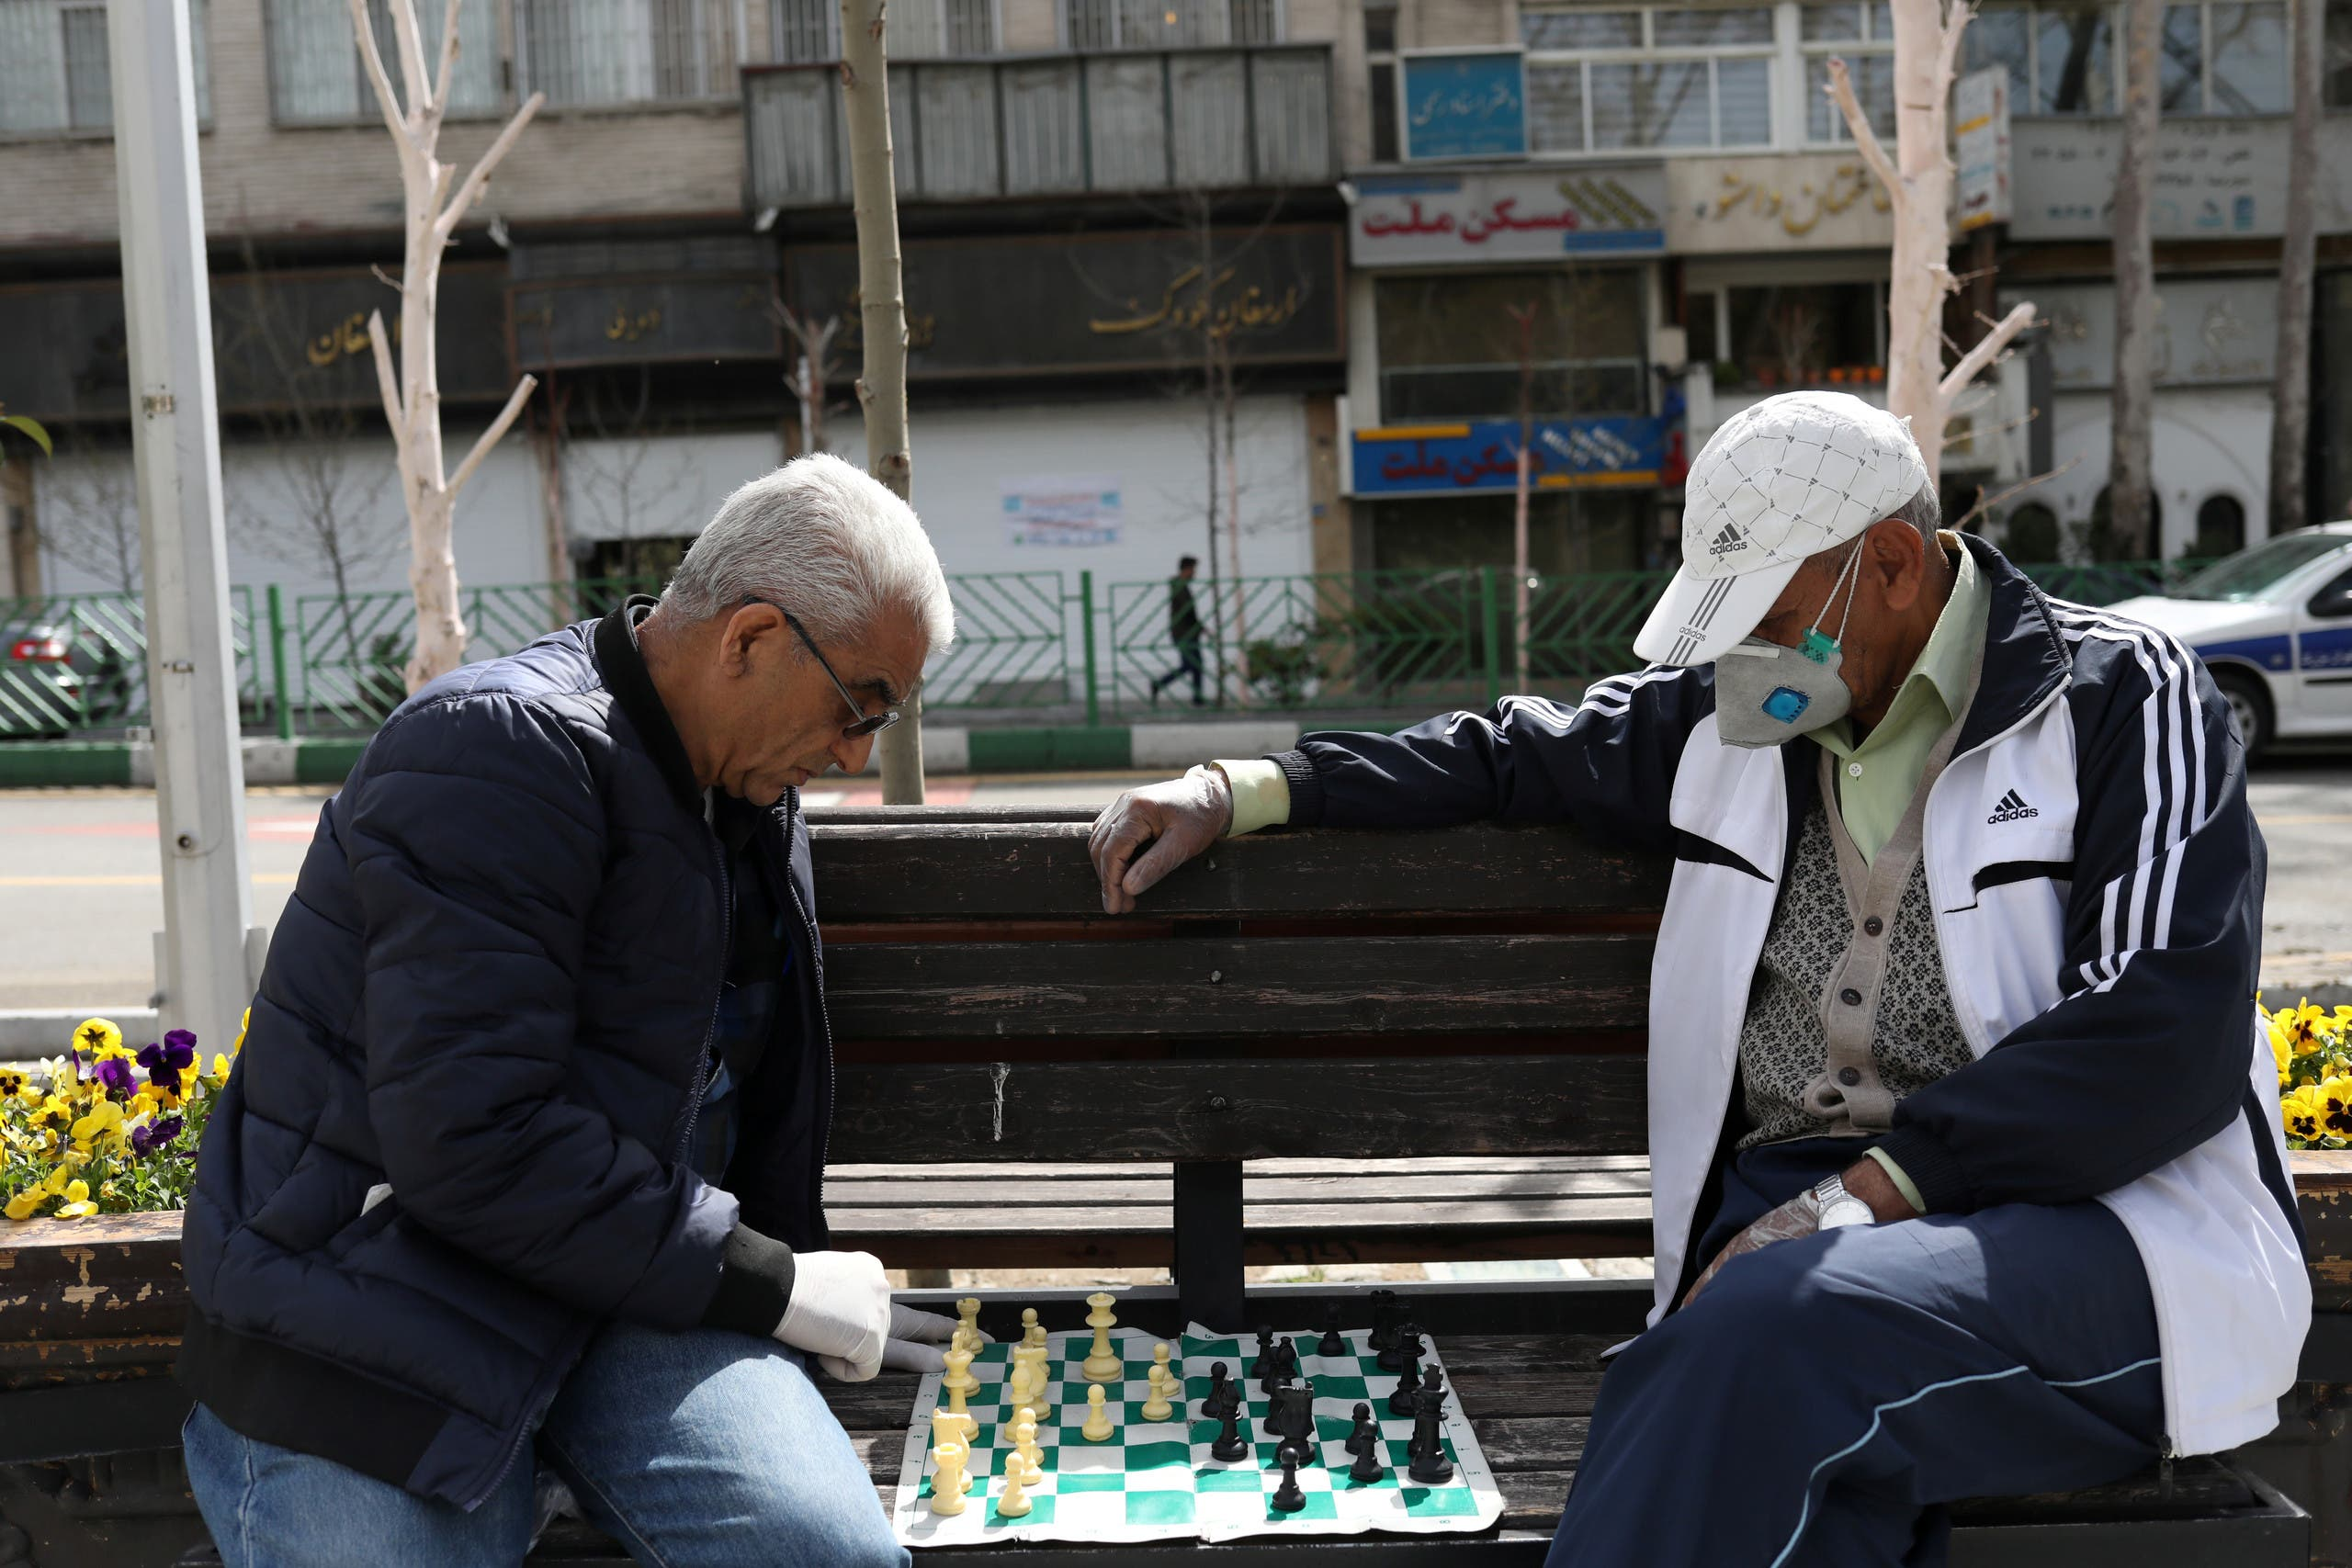 Men wear protective face masks and gloves, amid fear of coronavirus, play chess on the sidewalk of Mellat Park, in Tehran, Iran April 2, 2020. (WANA (West Asia News Agency)/Ali Khara via Reuters)